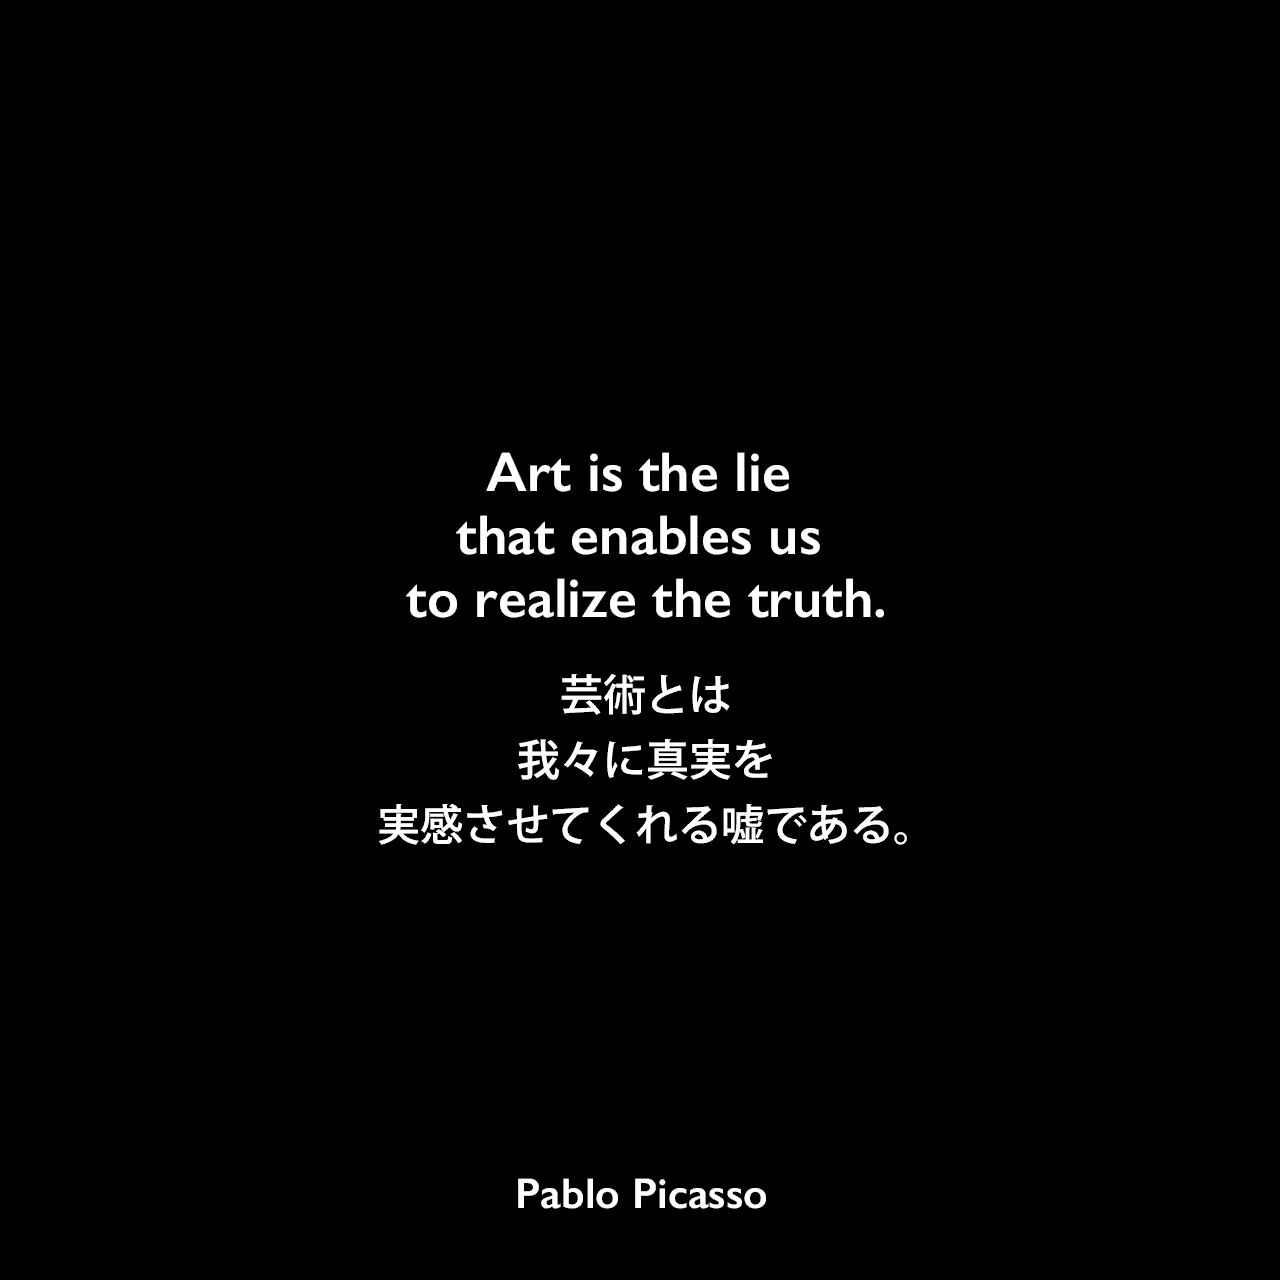 Art is the lie that enables us to realize the truth.芸術とは、我々に真実を実感させてくれる嘘である。Pablo Picasso